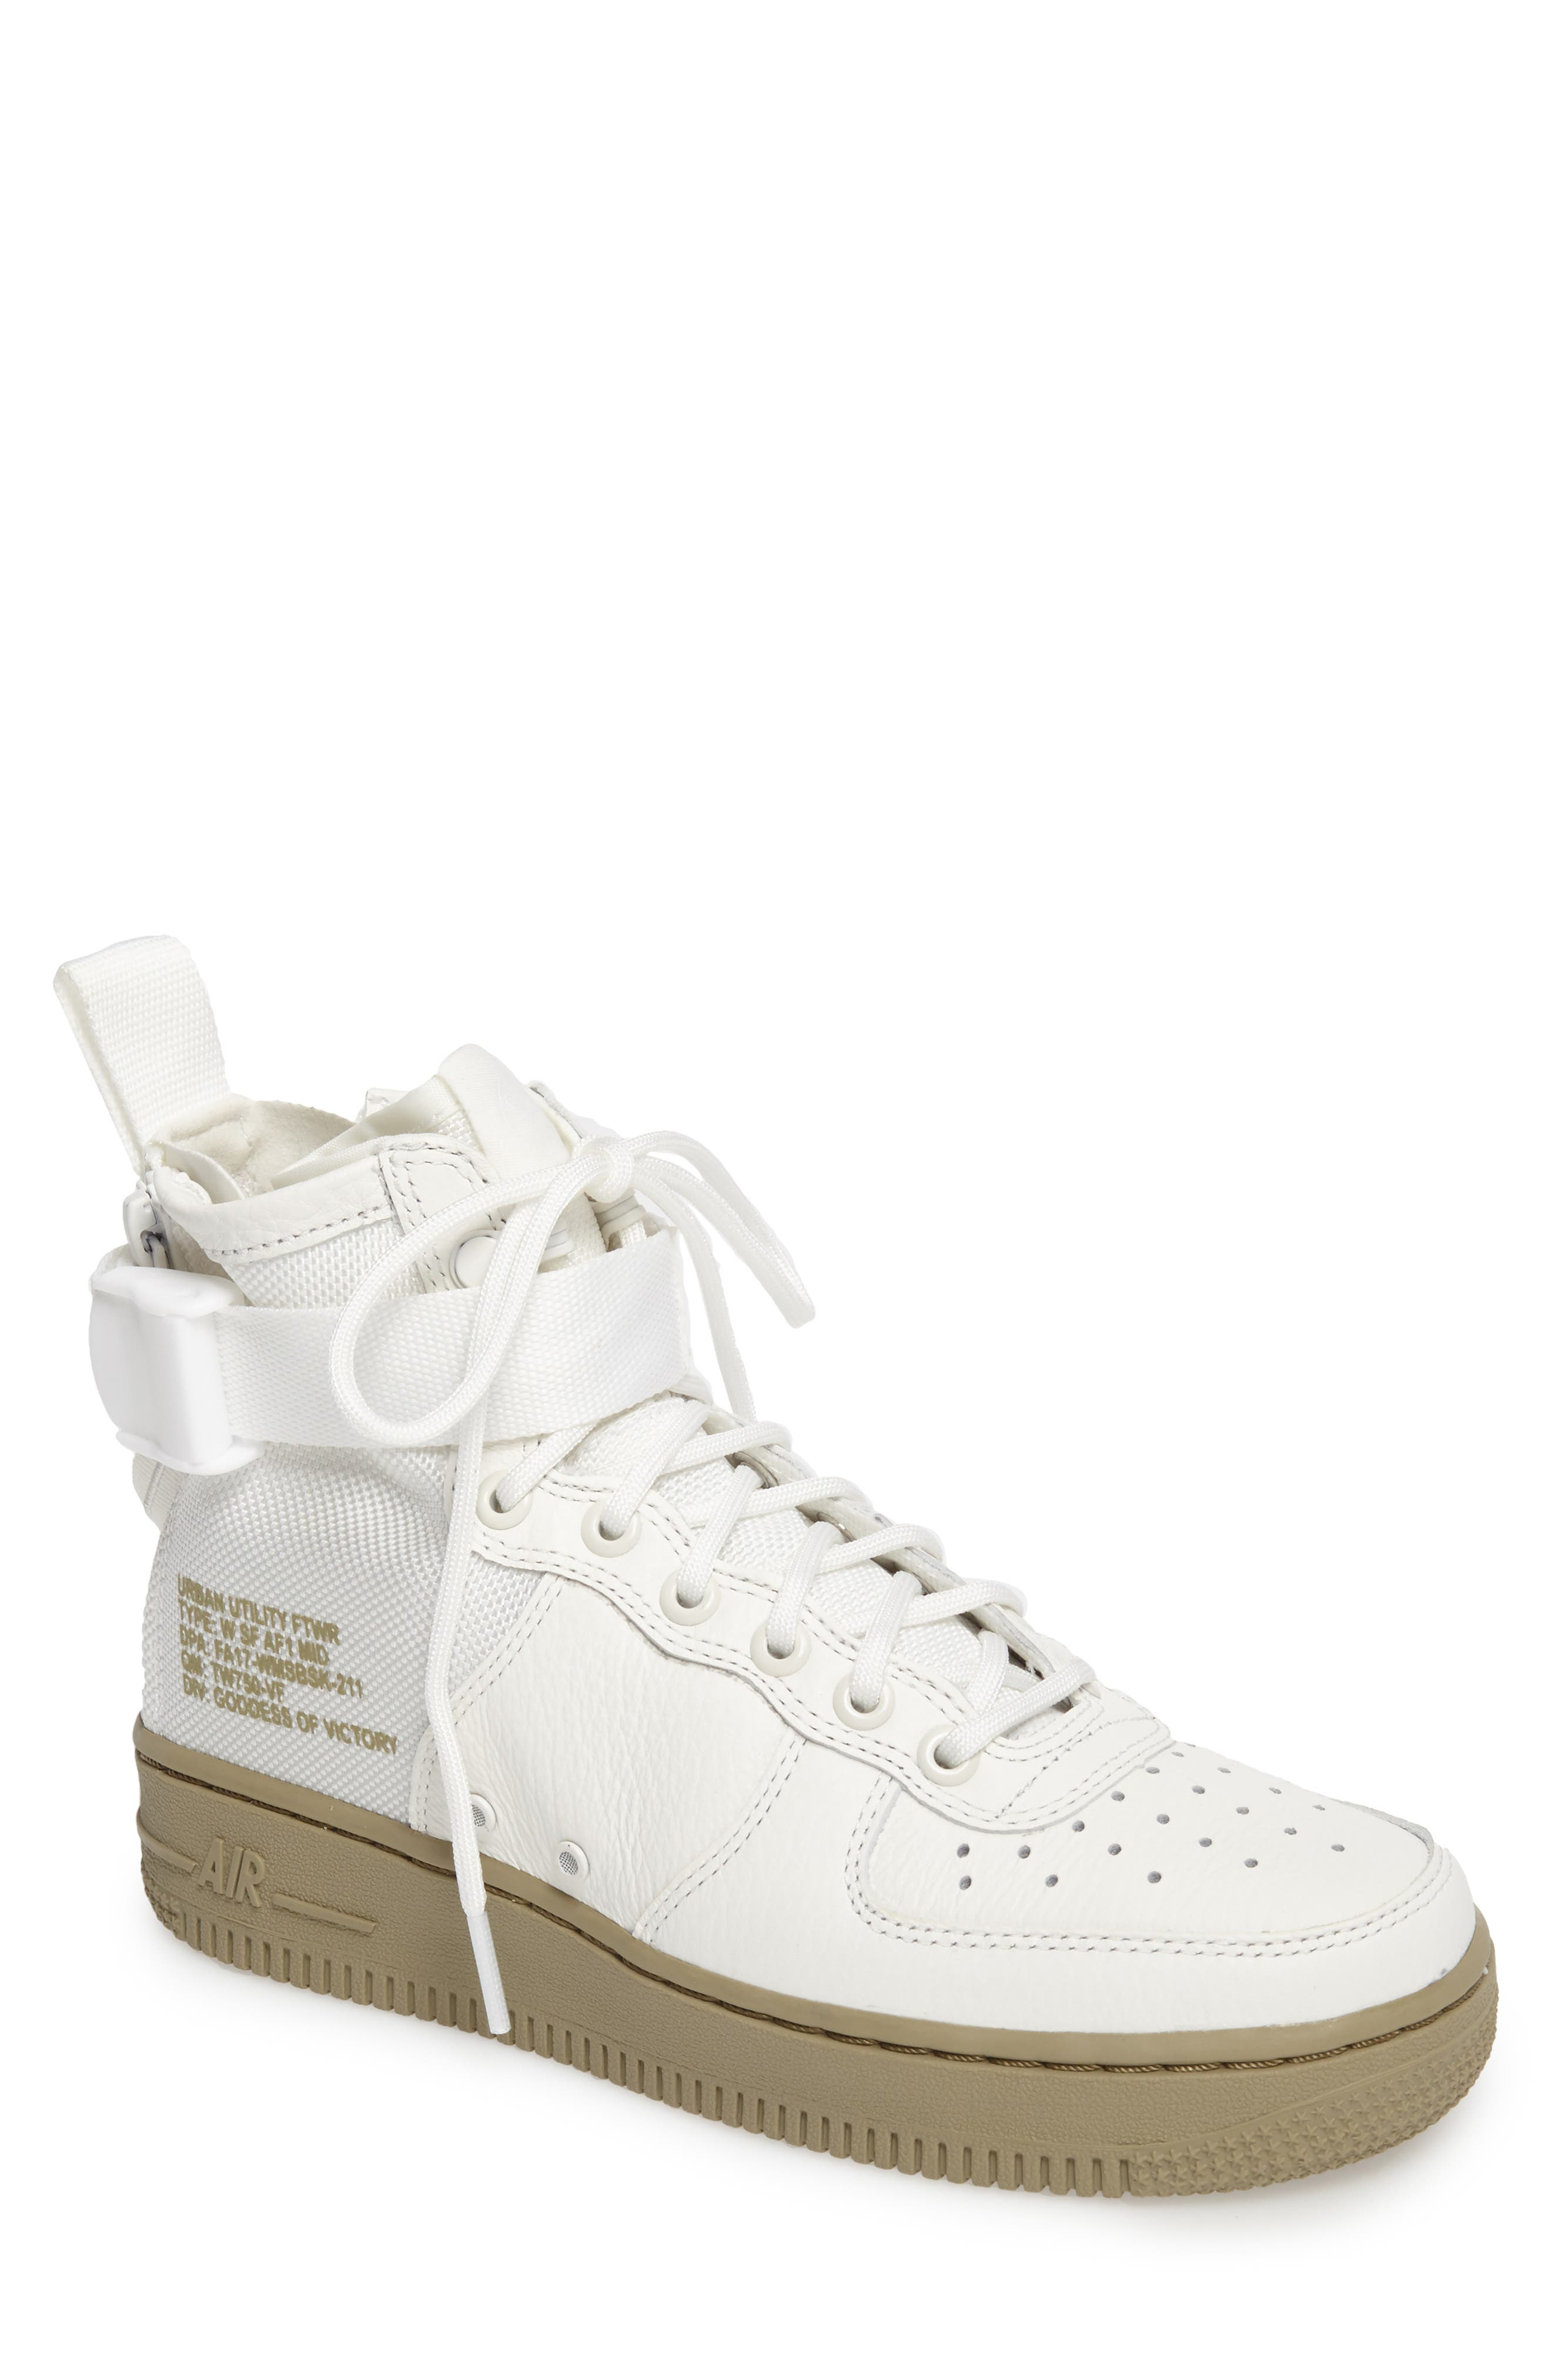 SF Air Force 1 Mid Sneaker,                             Main thumbnail 1, color,                             IVORY/IVORY-MARS STONE